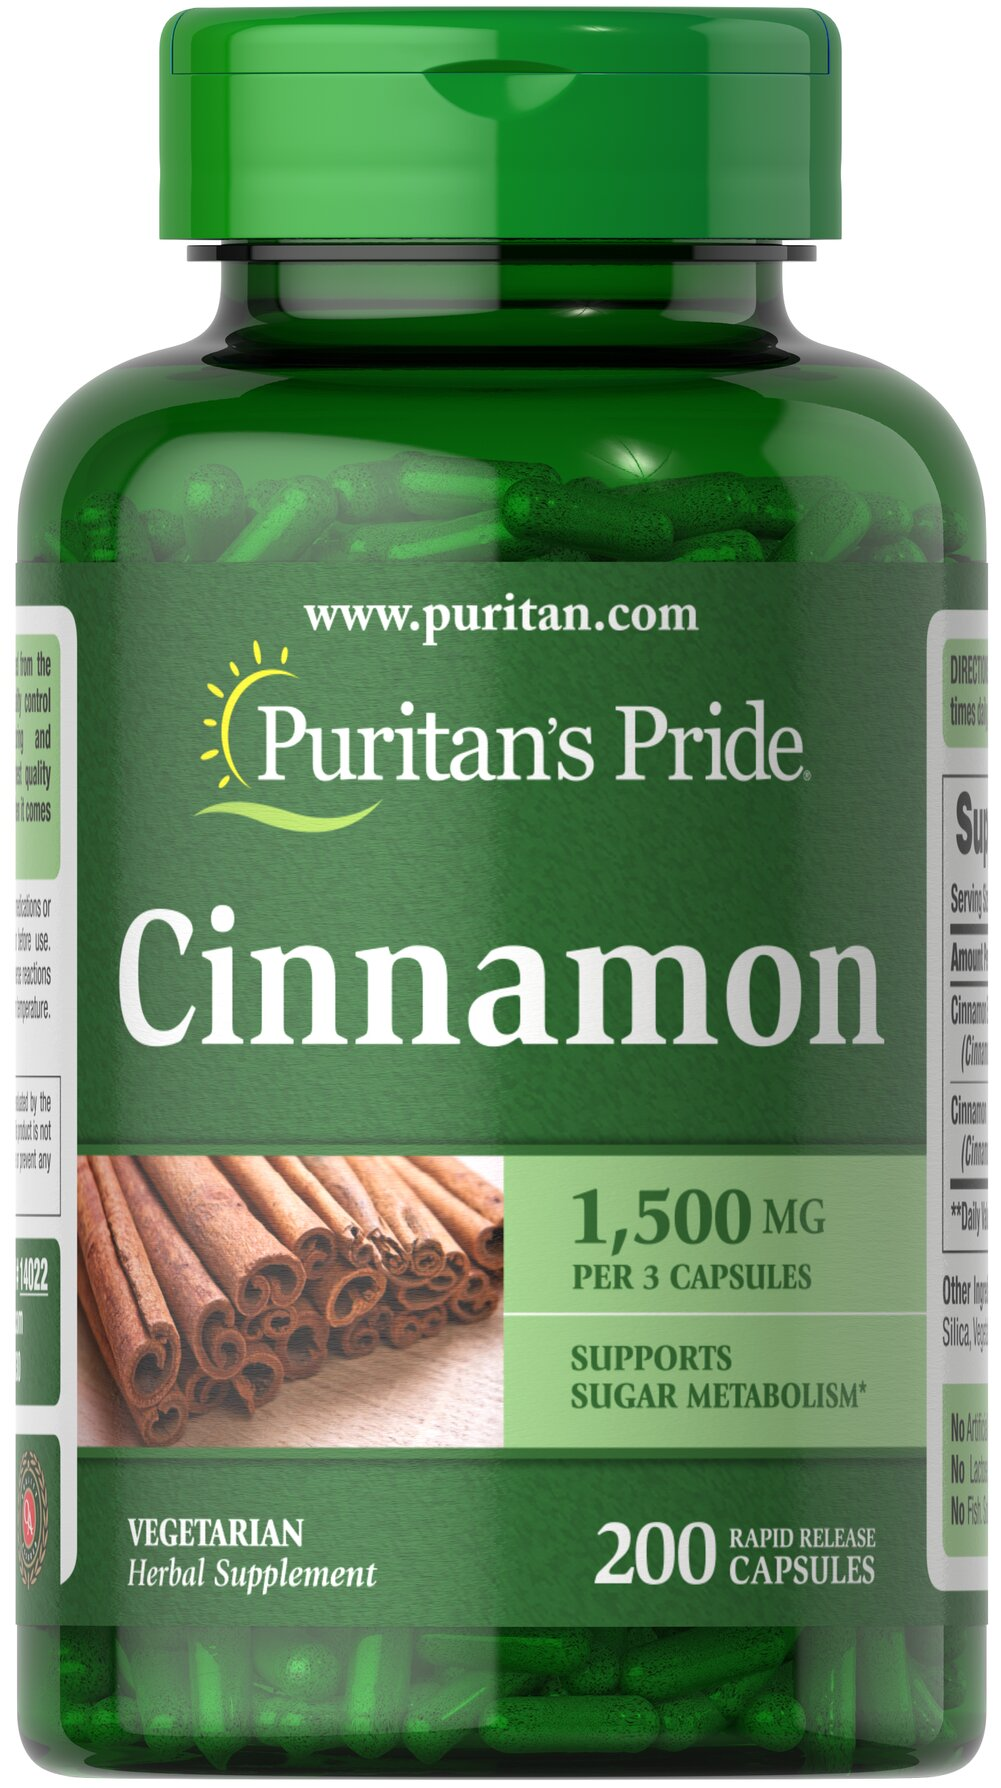 Cinnamon 500 mg Thumbnail Alternate Bottle View